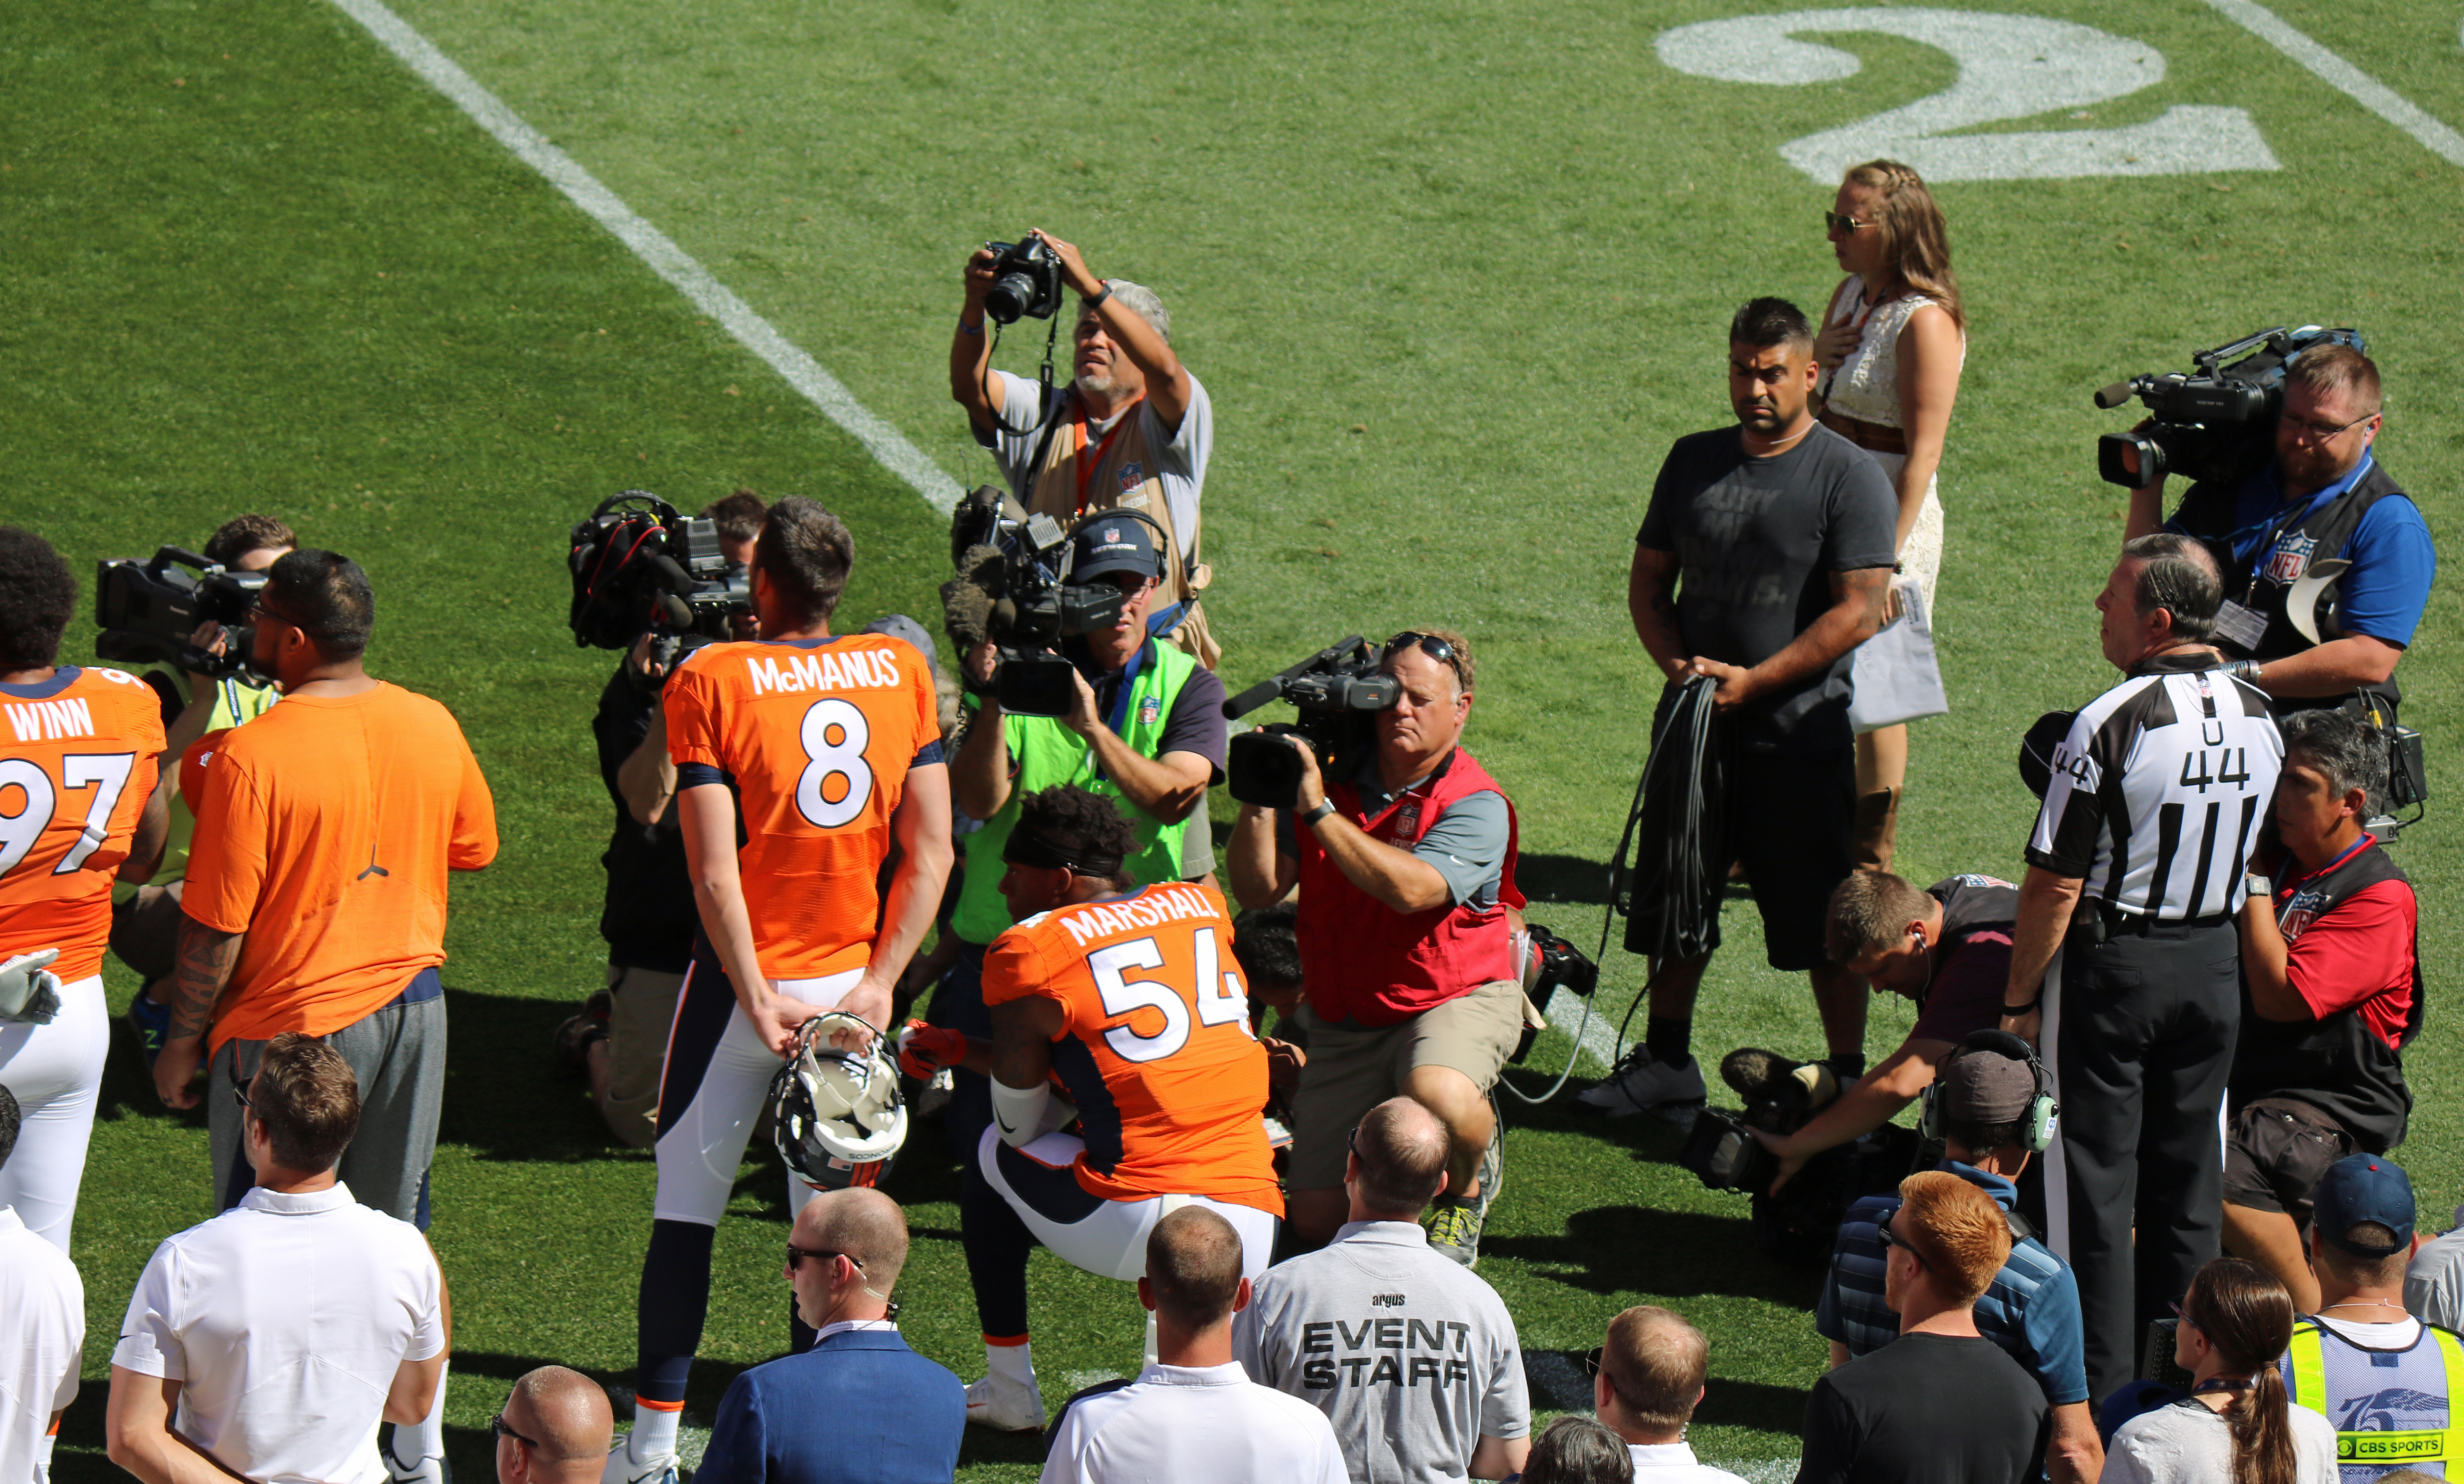 new concept 2bb78 ce3bc File:Brandon Marshall kneeling.JPG - Wikimedia Commons